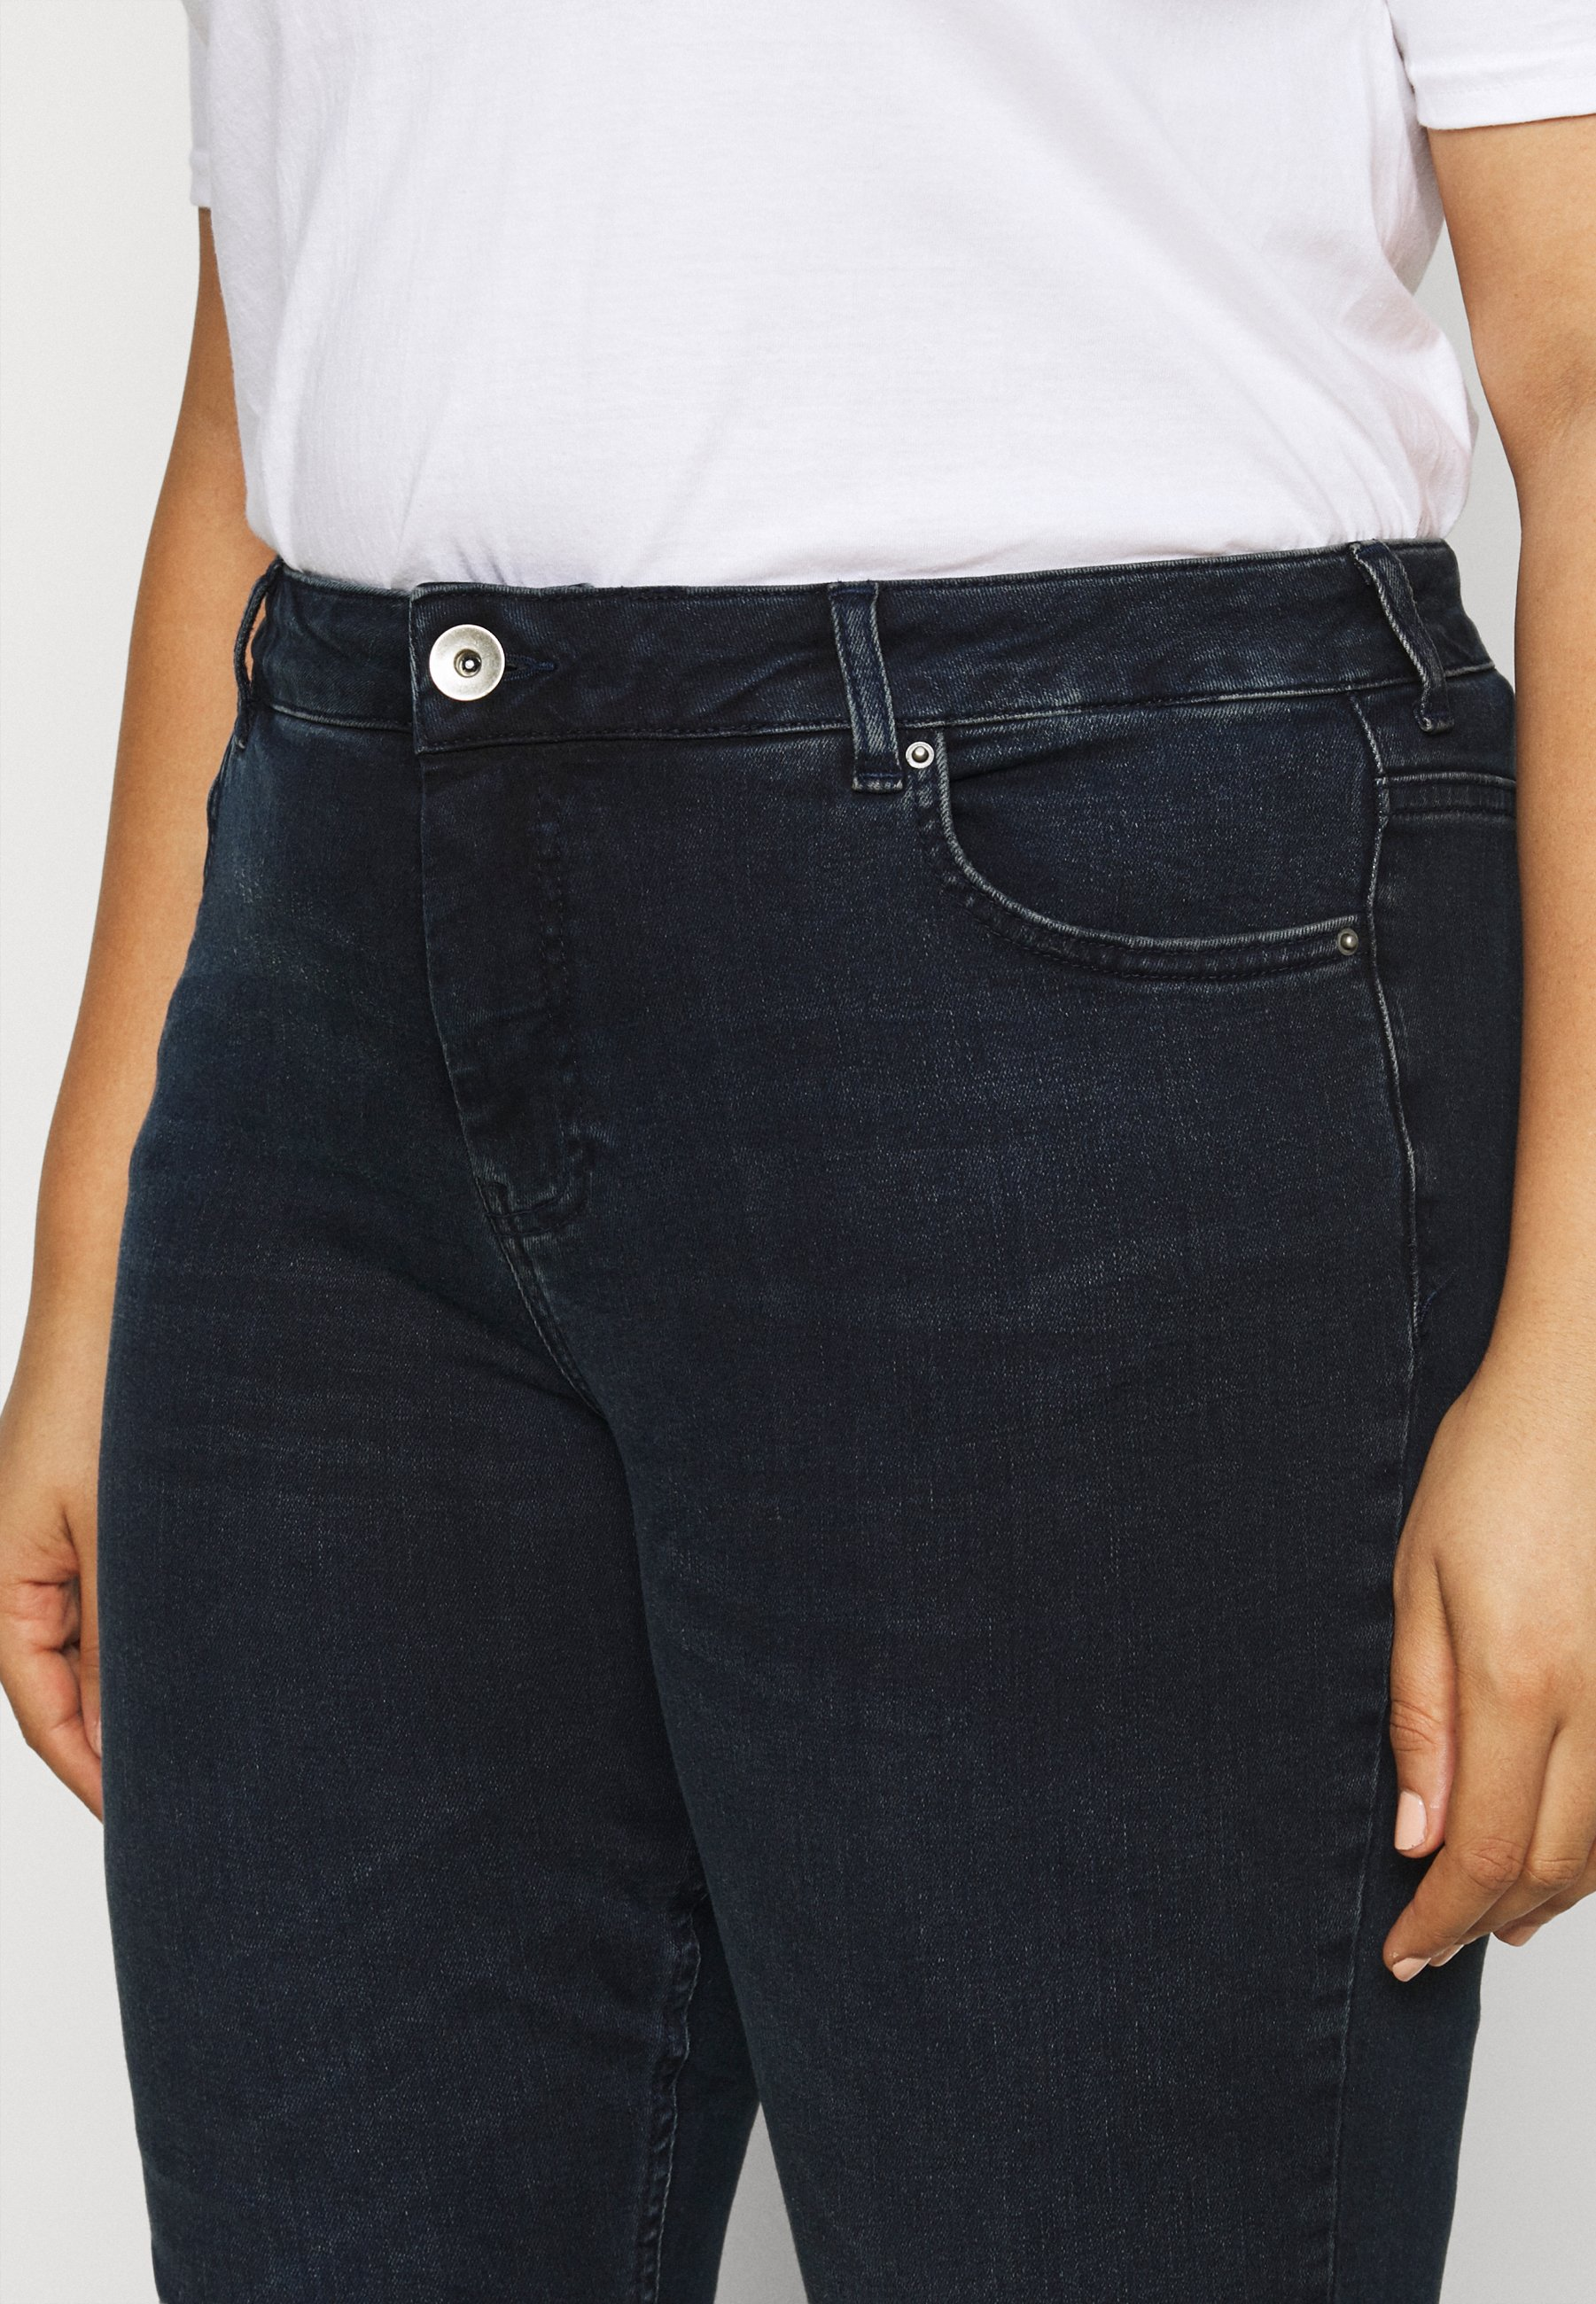 Zizzi Jeans Skinny Fit - dark blue denim - Women's Clothing rXPr1